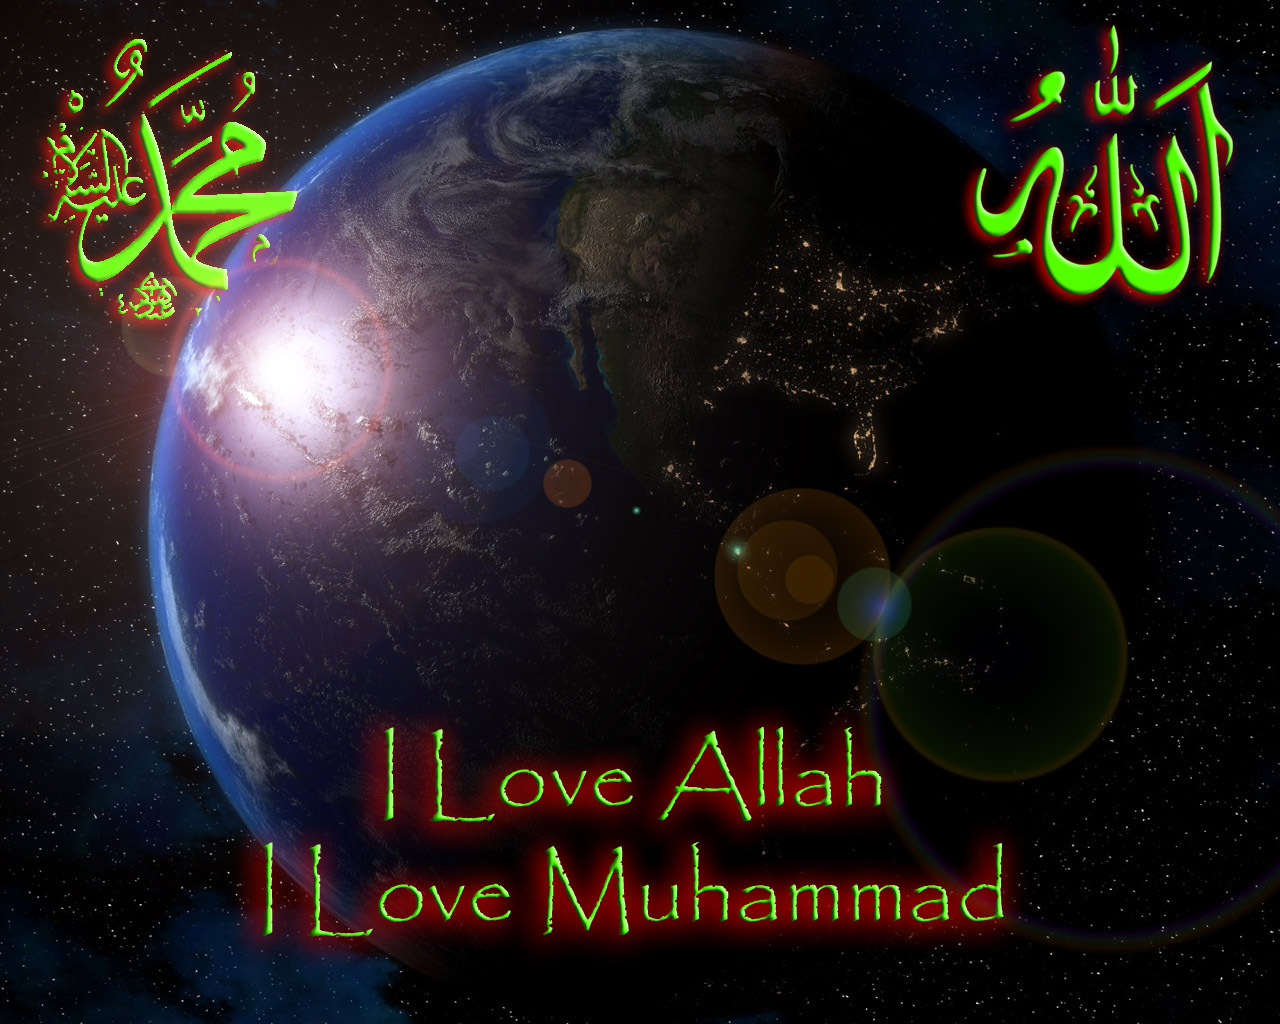 We Love Allah Wallpaper : The gallery for --> I Love Allah Muhammad Wallpaper